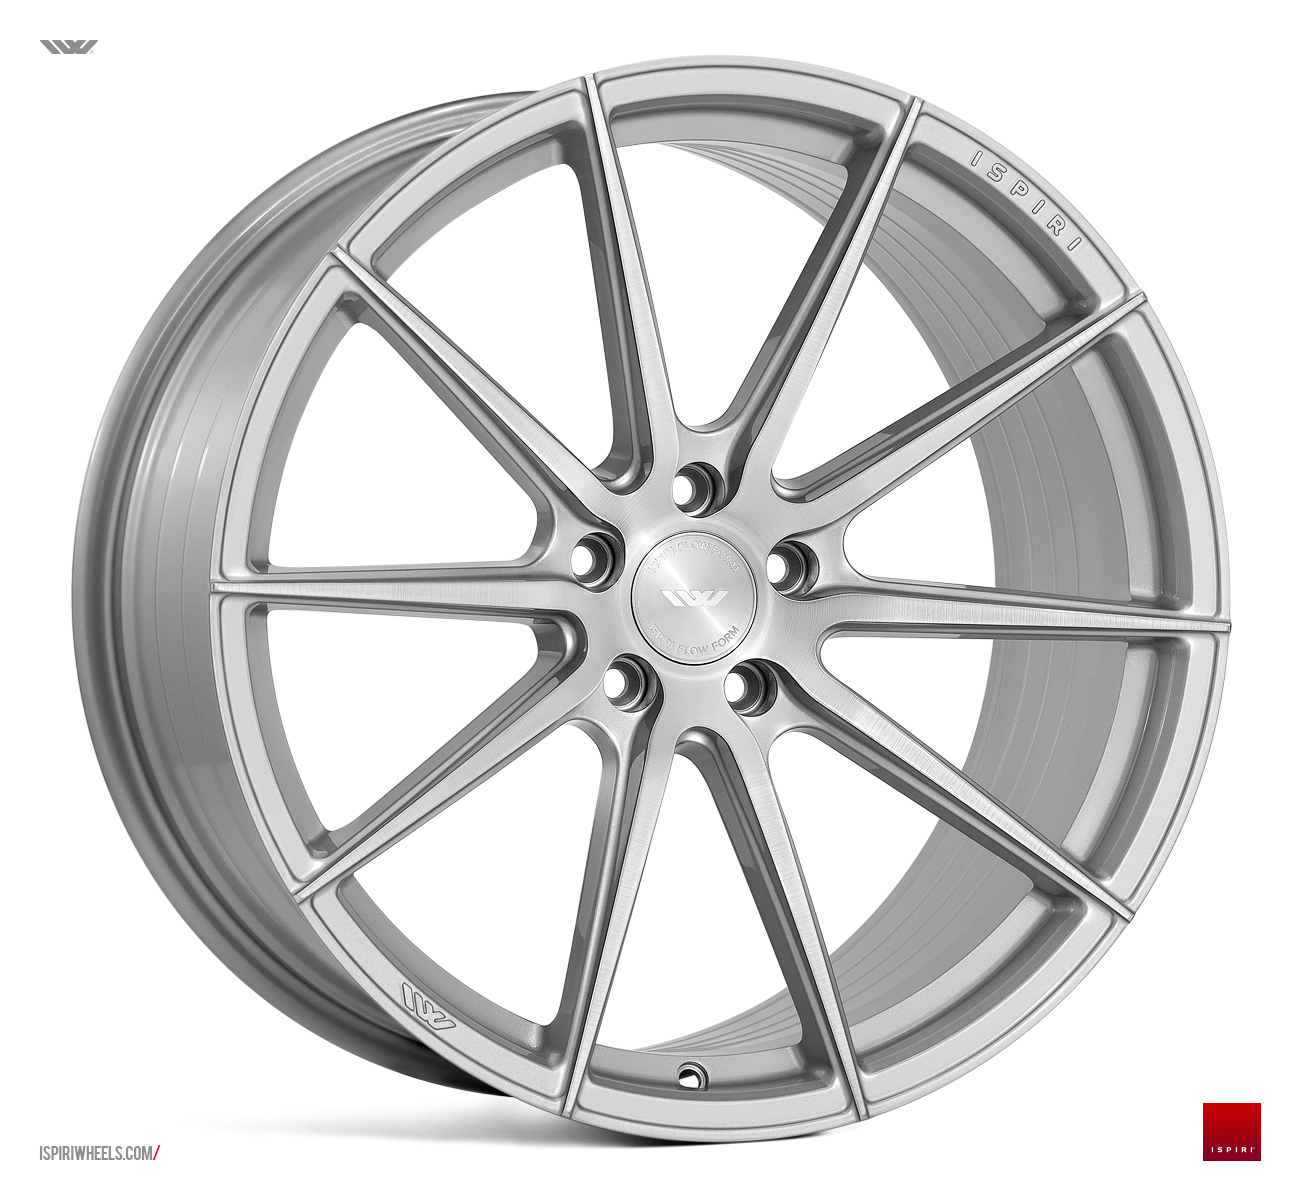 "NEW 20"" ISPIRI FFR1 MULTI-SPOKE ALLOY WHEELS IN PURE SILVER WITH BRUSHED POLISH FACE, DEEPER CONCAVE 10"" or 10.5"" REARS - VARIOUS OFFSETS"